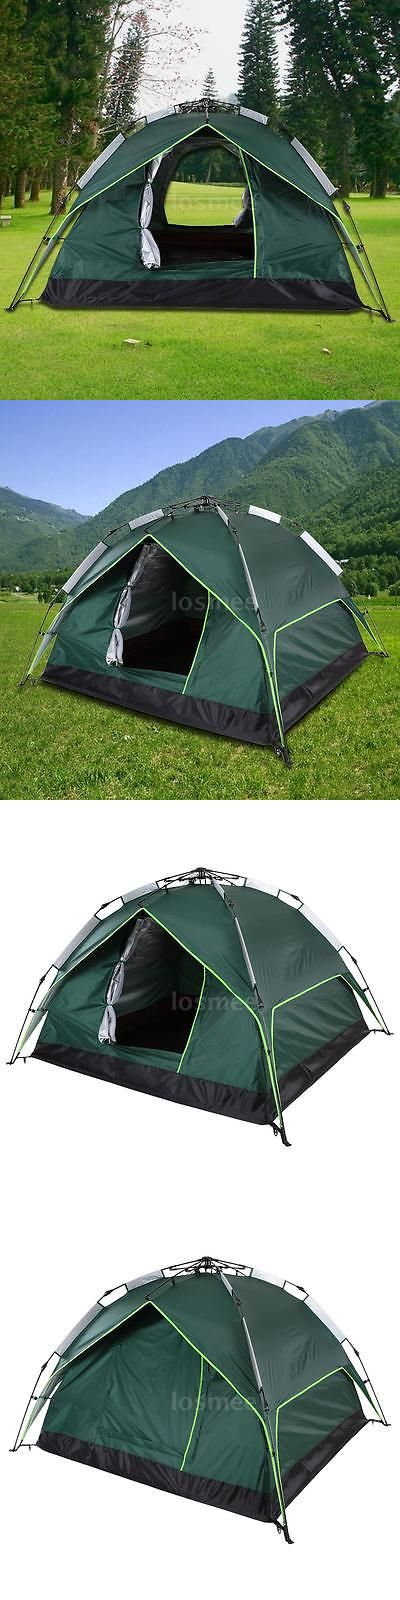 Tents 179010: Waterproof 3-4 People Automatic Instant Pop Up Family Tent Camping Tent -> BUY IT NOW ONLY: $39.99 on eBay!